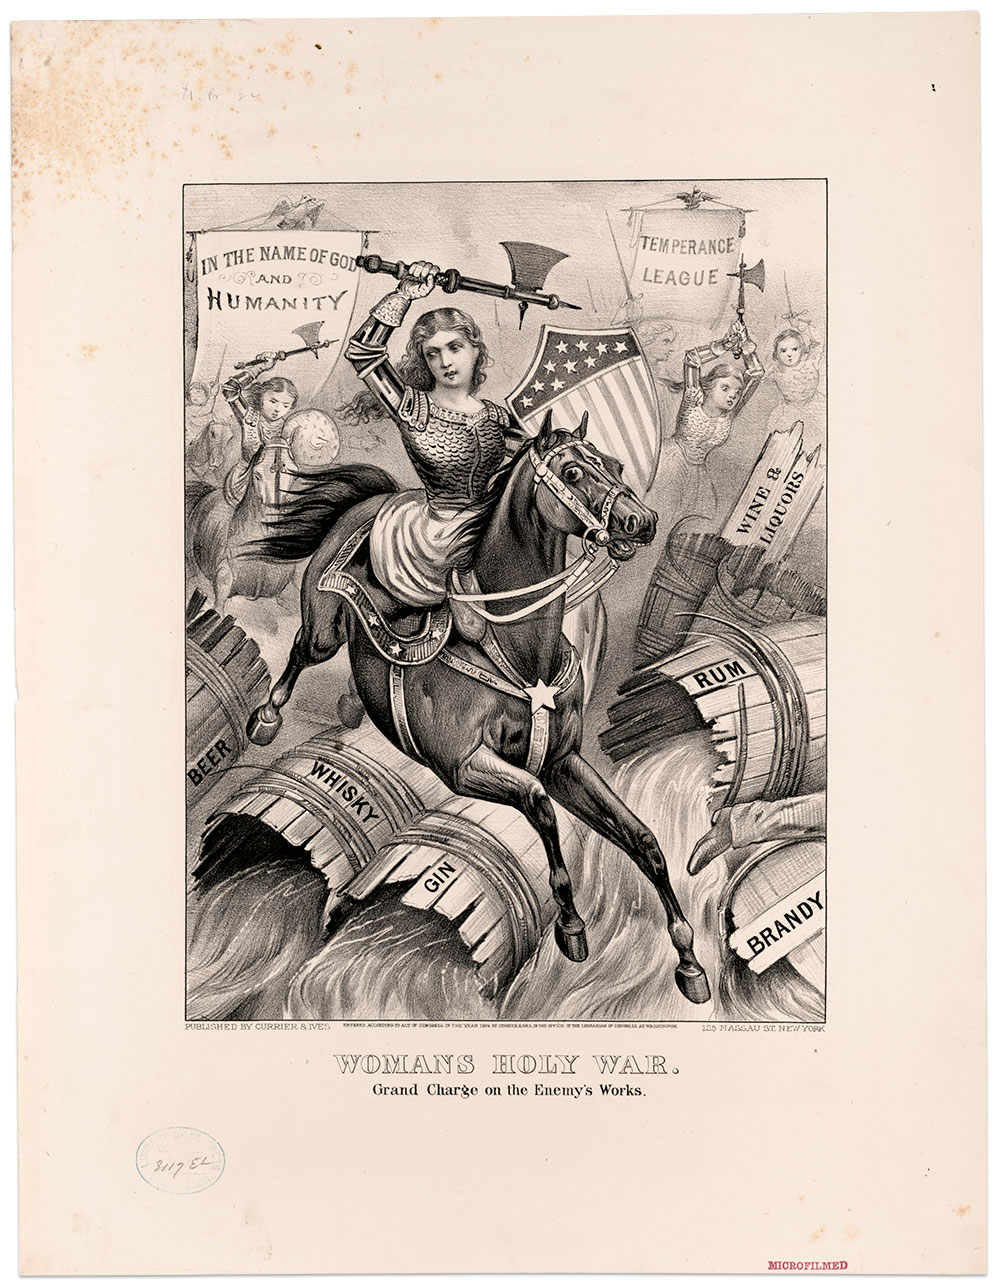 """ALCOHOL ABUSE WARRIOR: Evans fought the evils of alcohol with a fervor exceeded by this unrelated romantic figure, titled """"Woman's Holy War. Grand Charge on the Enemy's Works"""" by Currier & Ives in 1874. Library of Congress."""